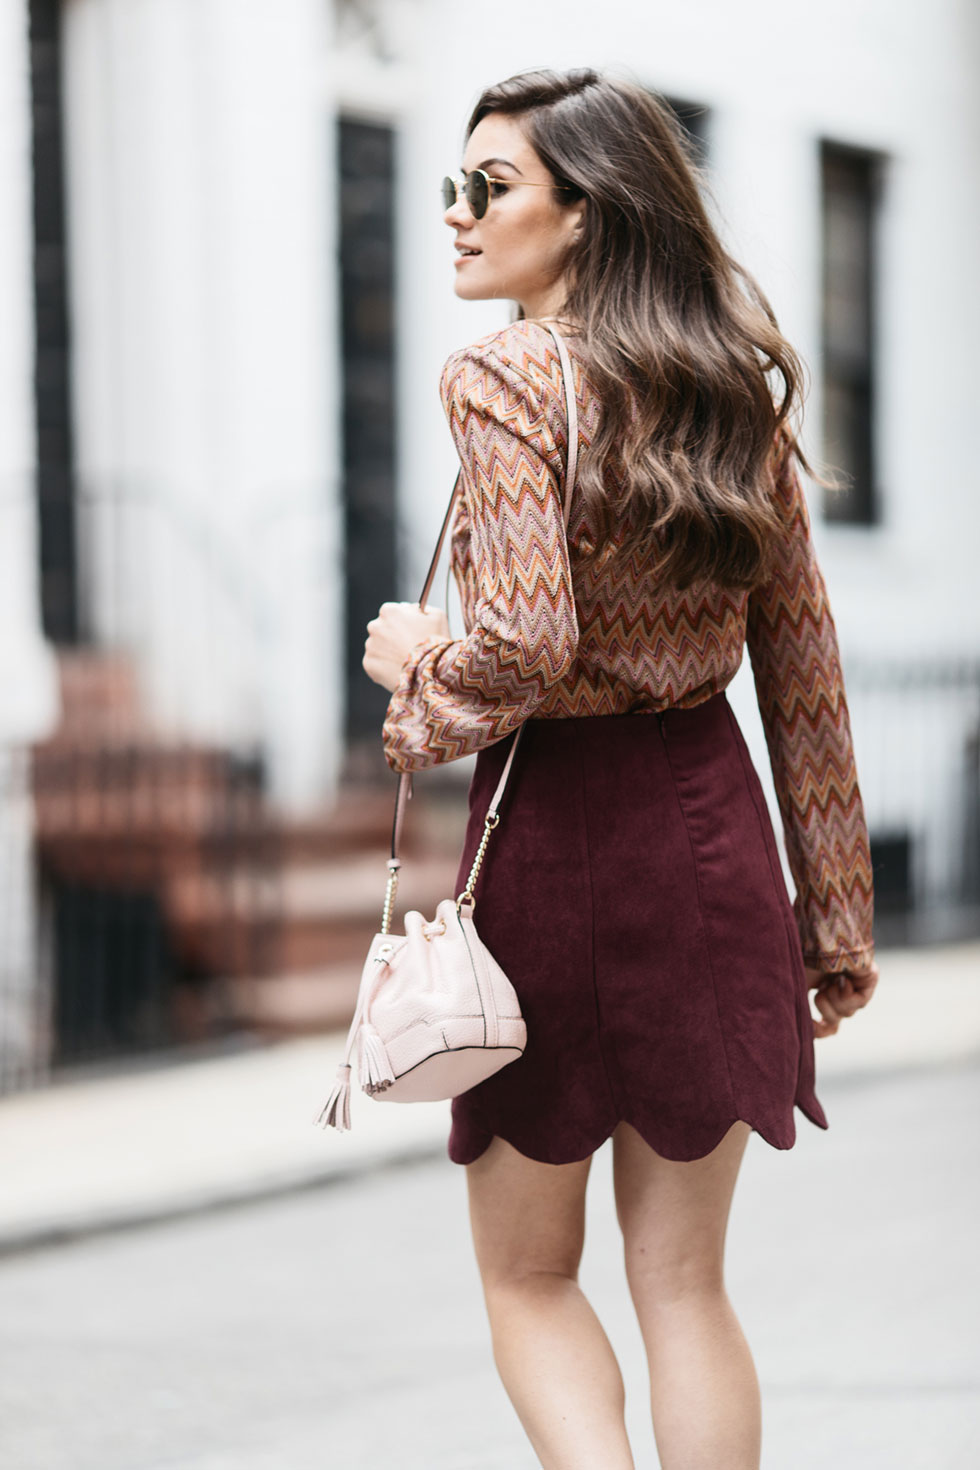 Long Bell Sleeve Top with Lace Up Front and Scallop Edge Faux Suede Skirt and Rebecca Minkoff Micro Lexi Bucket Cross Body